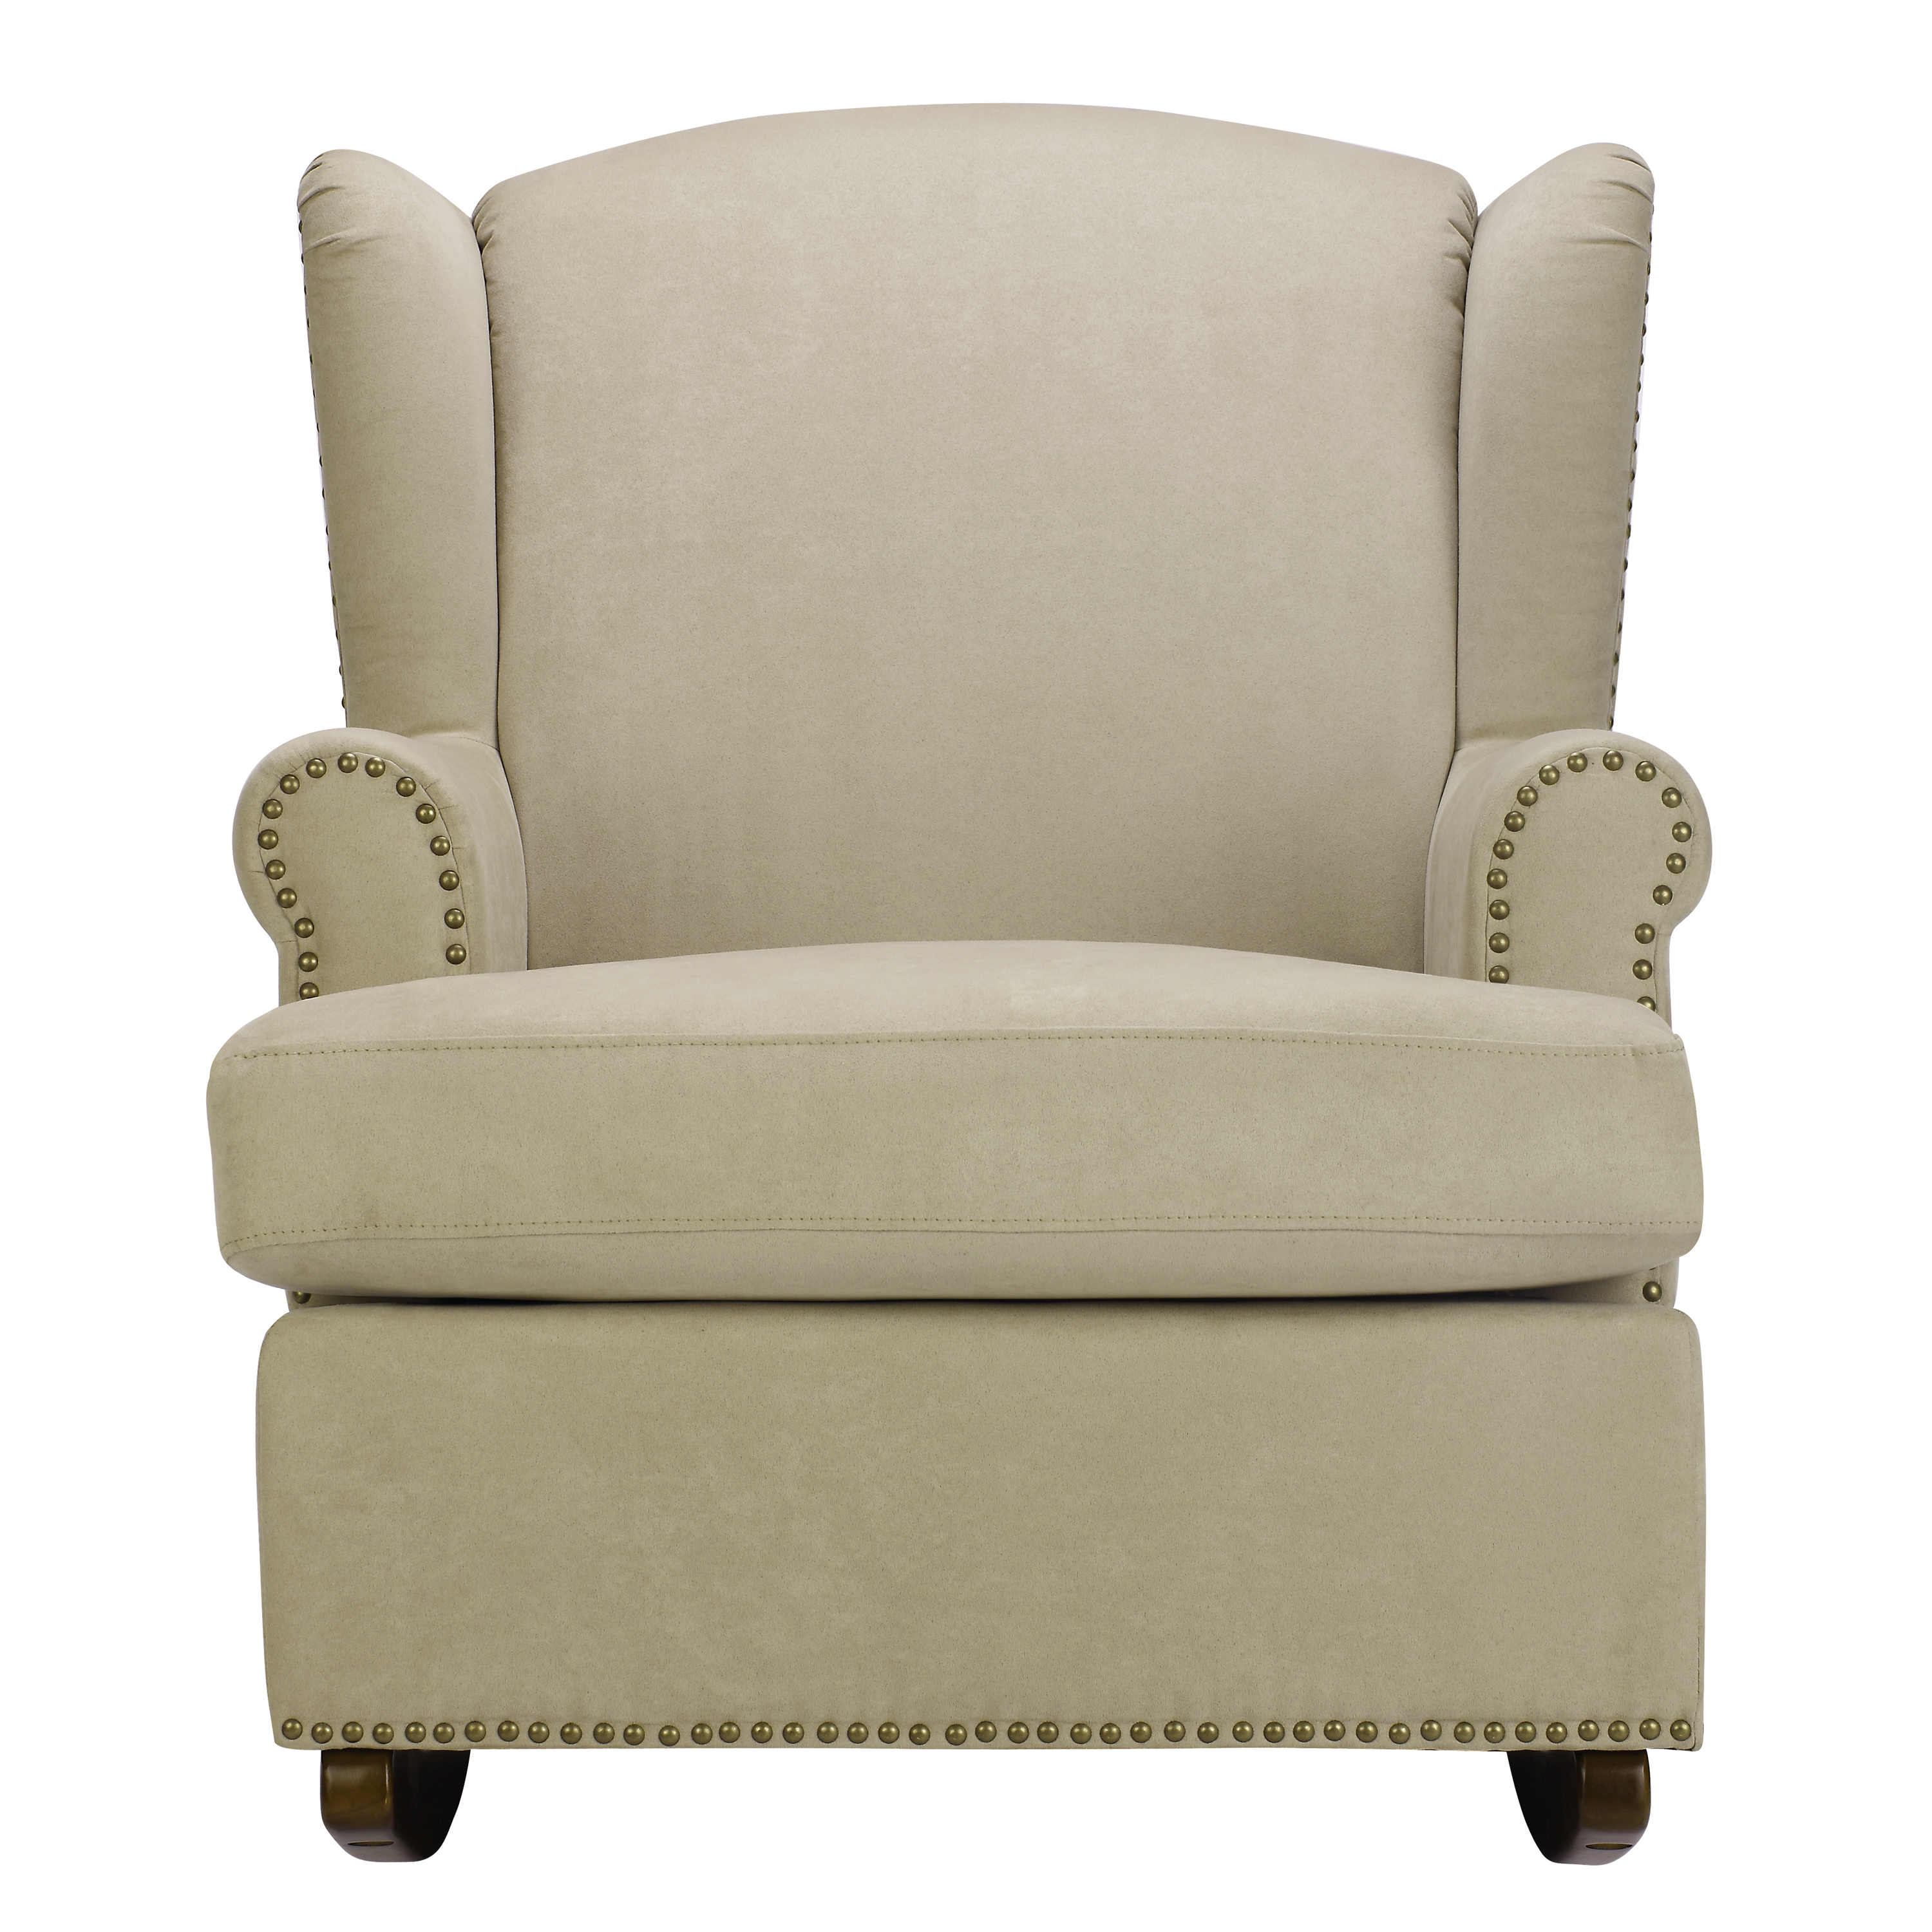 Dorel Harlow Wingback Rocker Chair With Nailheads, Multiple Colors